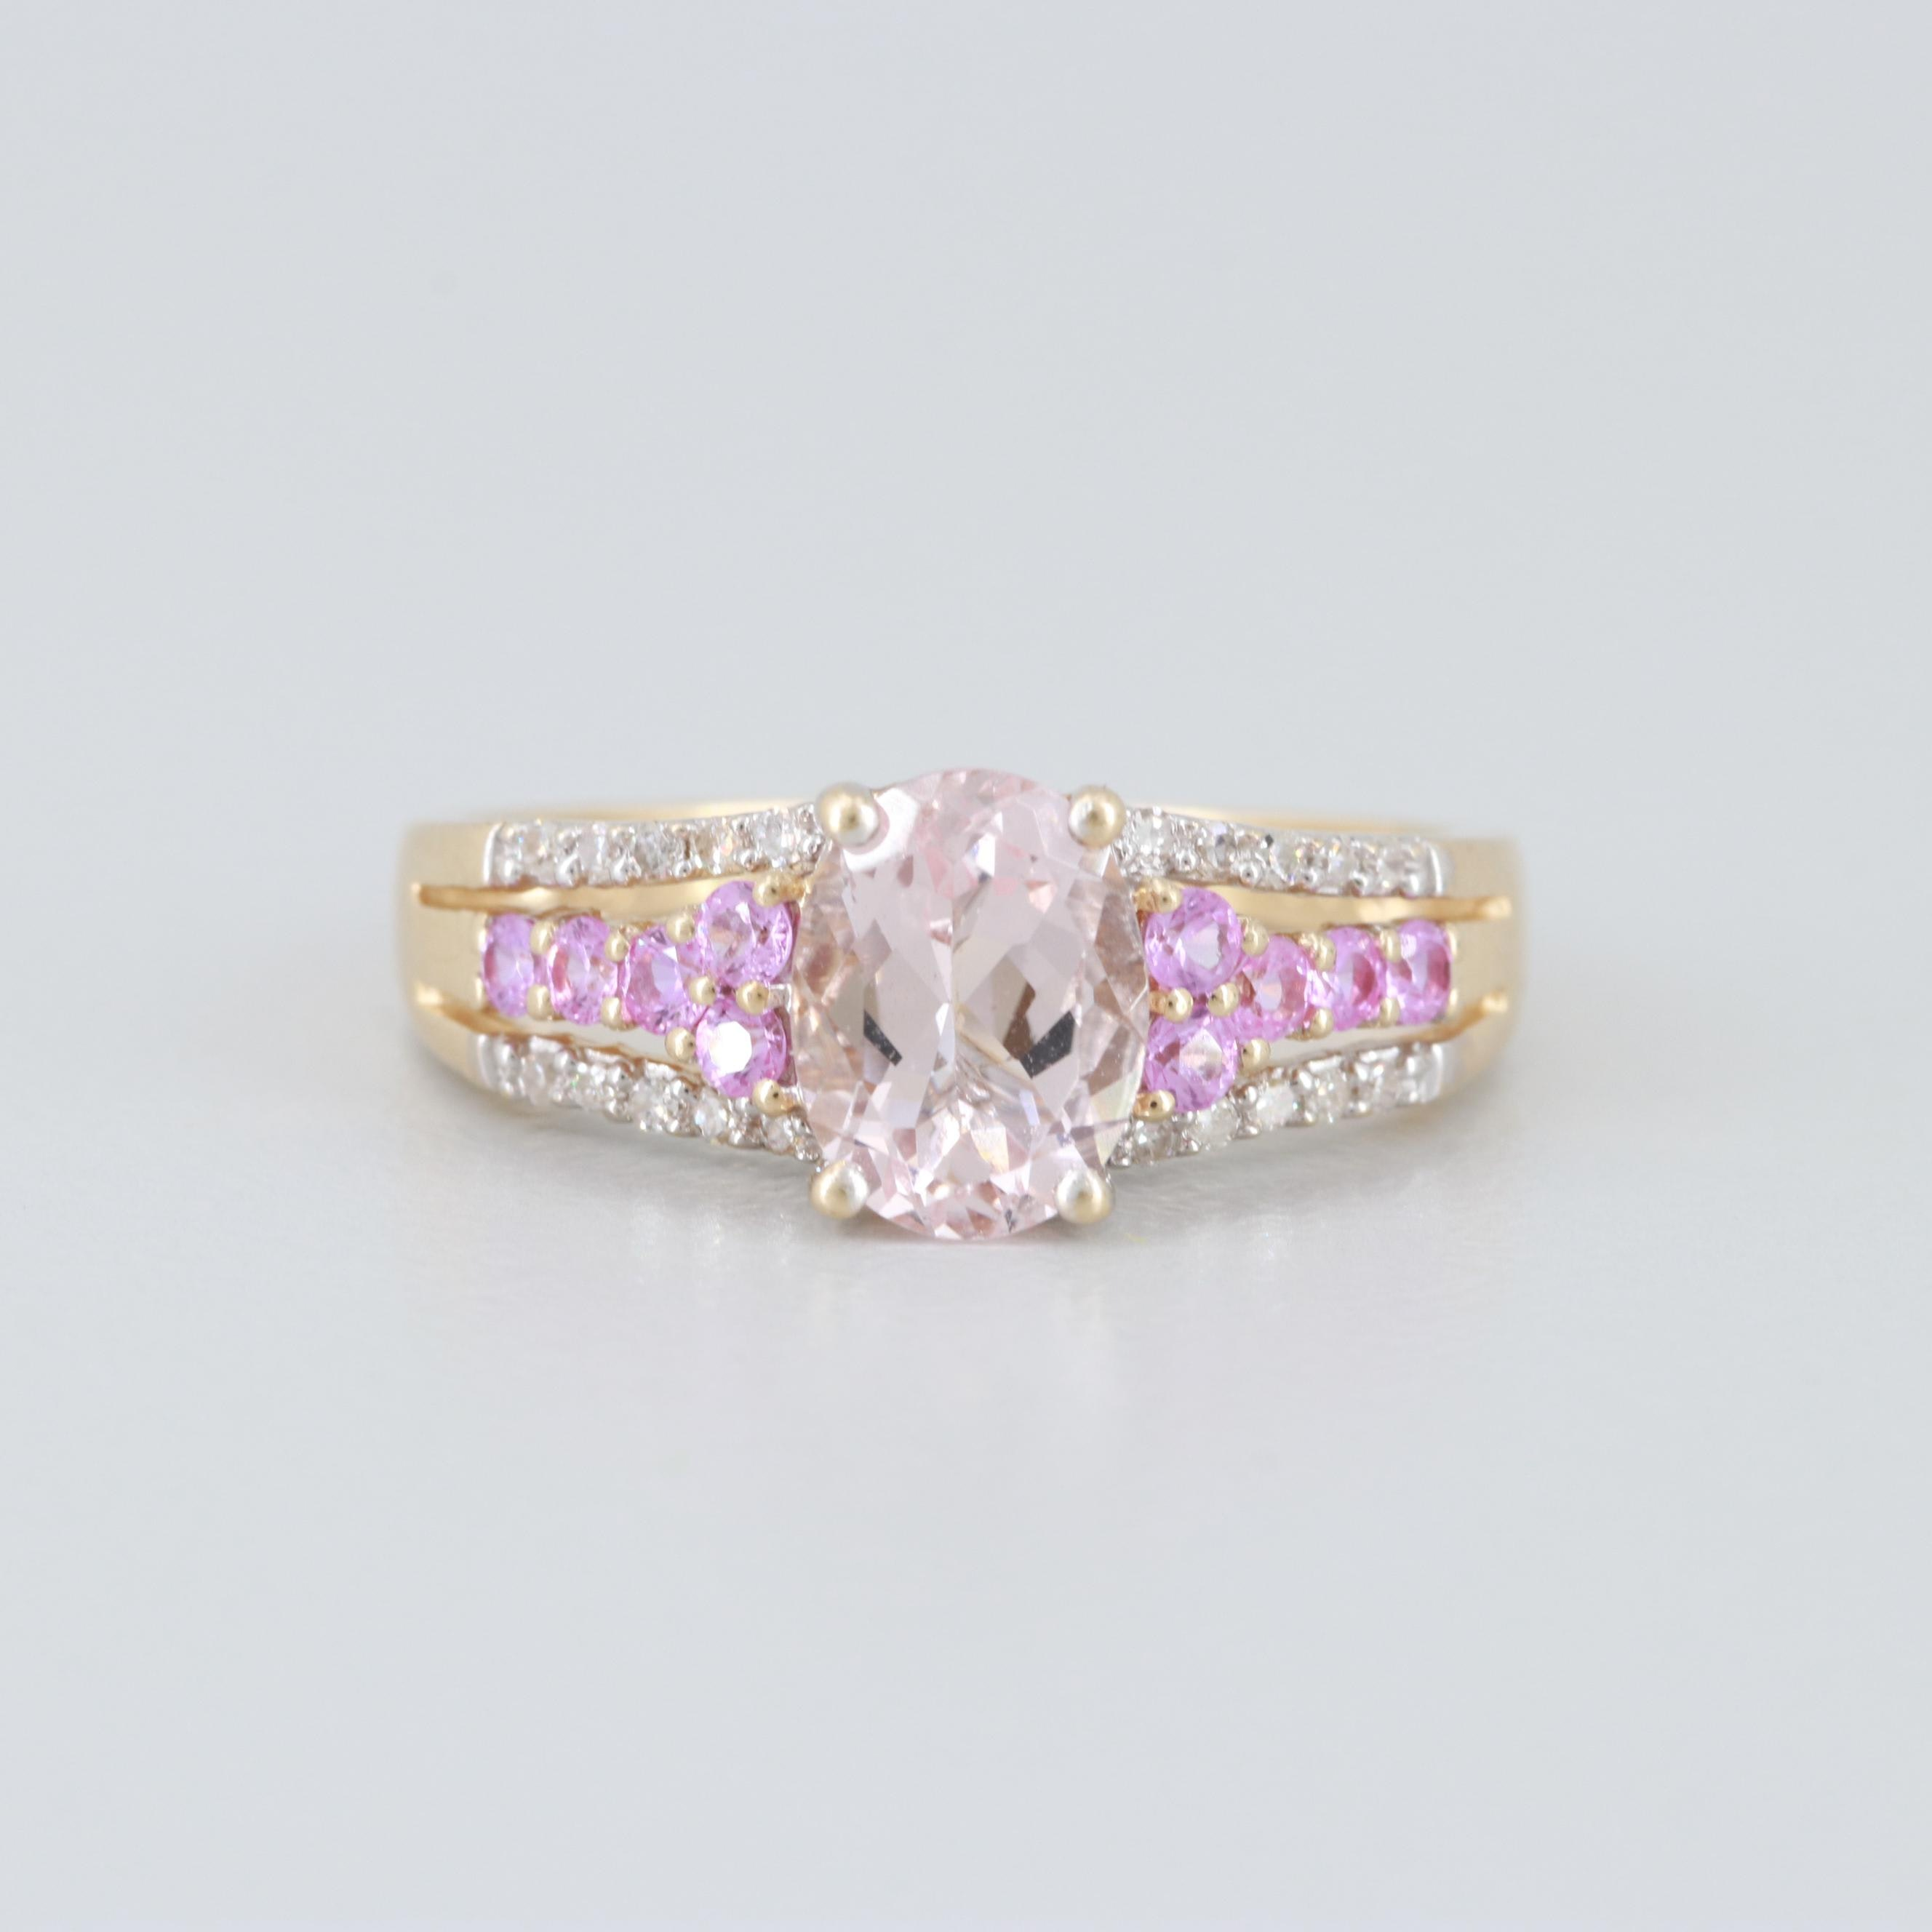 14K Yellow Gold Morganite, Diamond and Pink Sapphire Ring